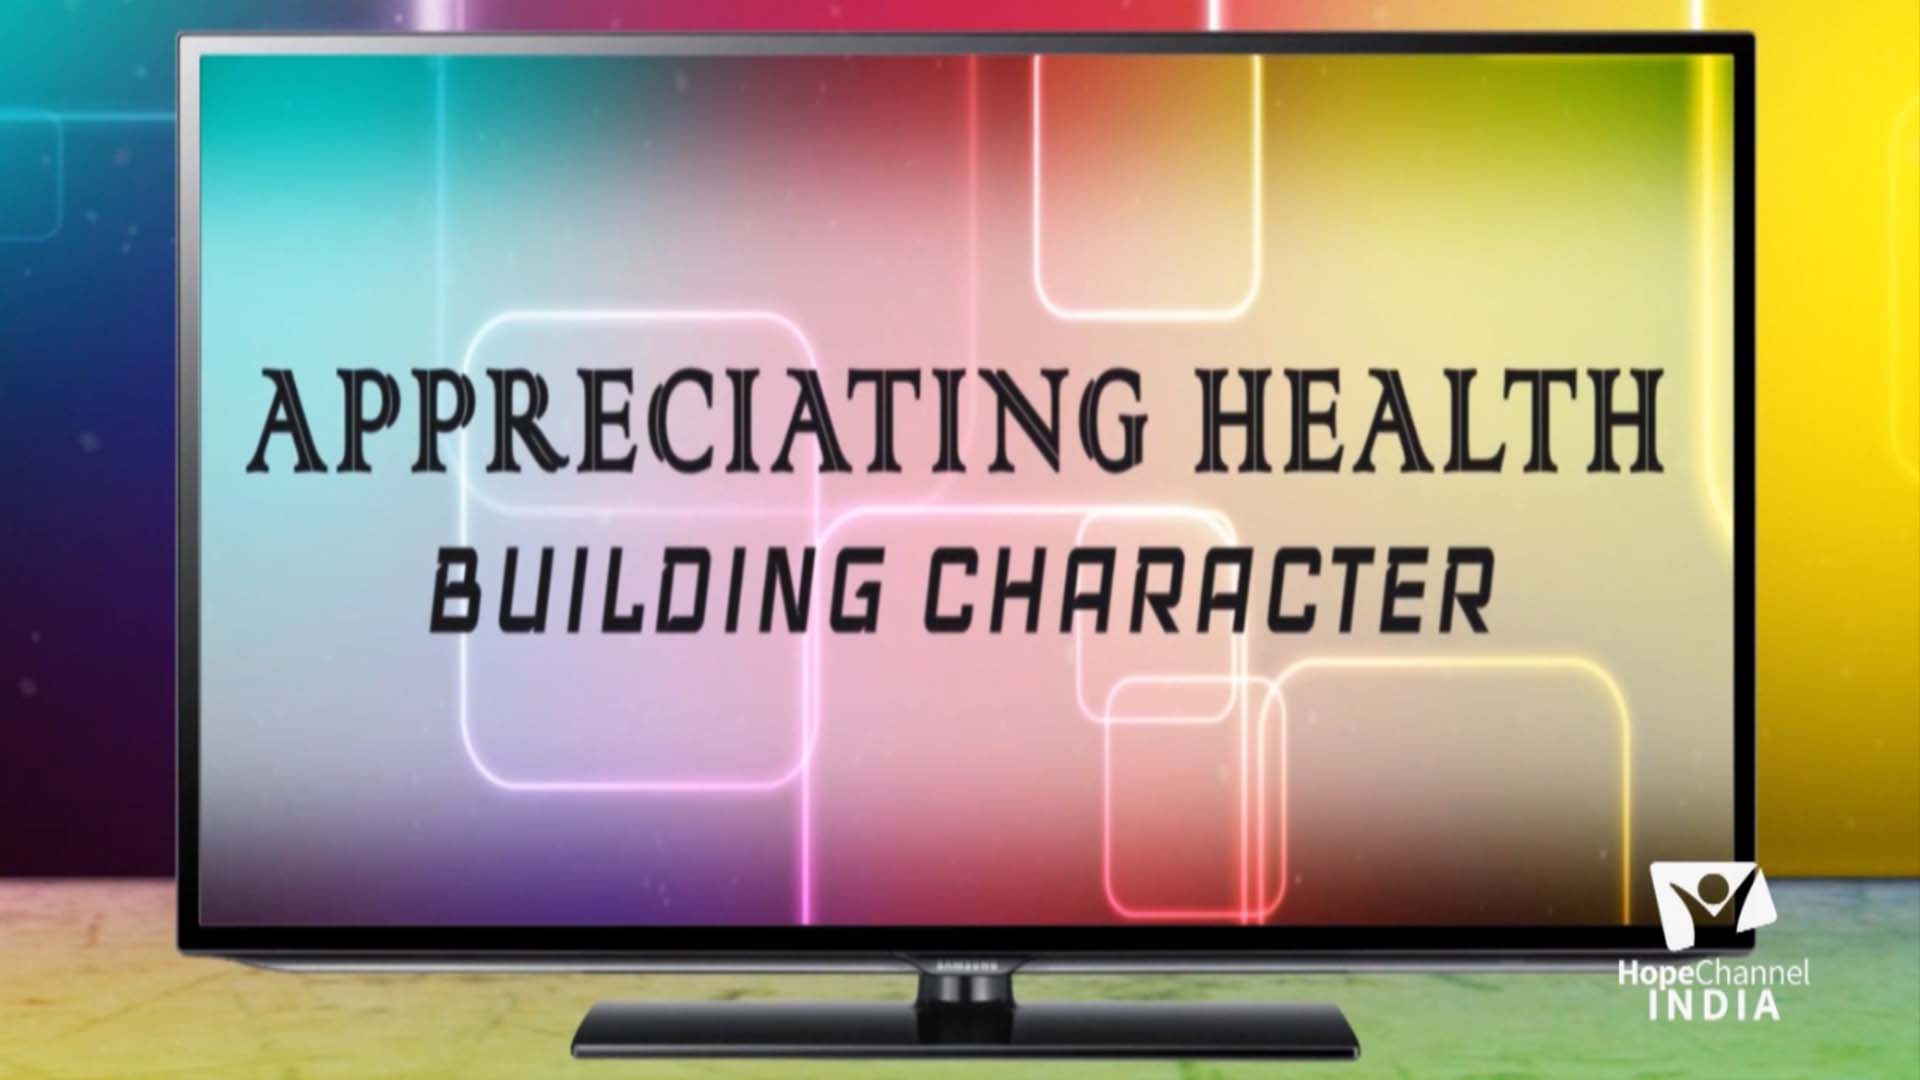 Appreciating Health - Building Character